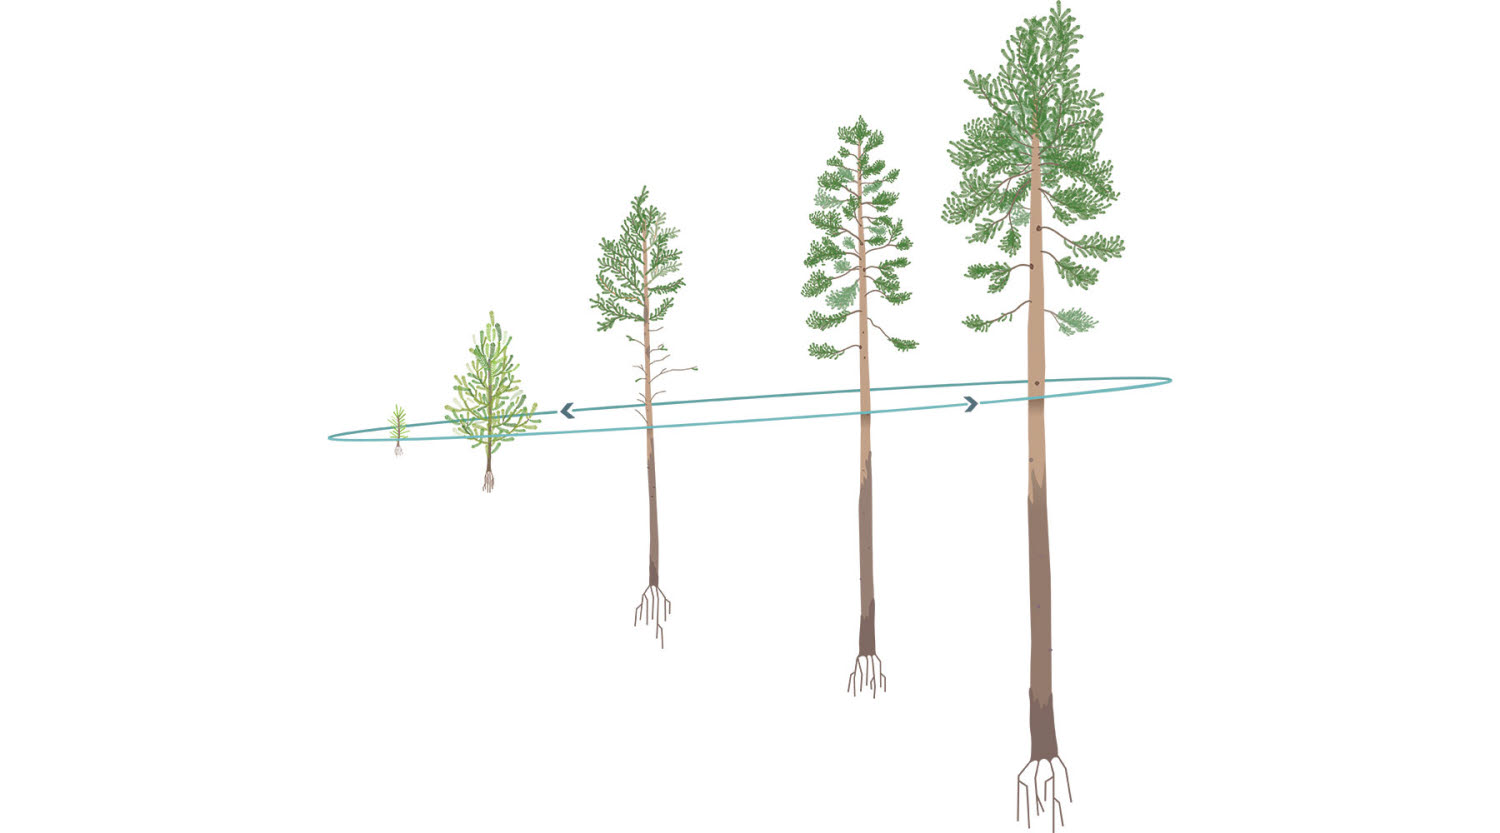 Graphical illustrations of trees